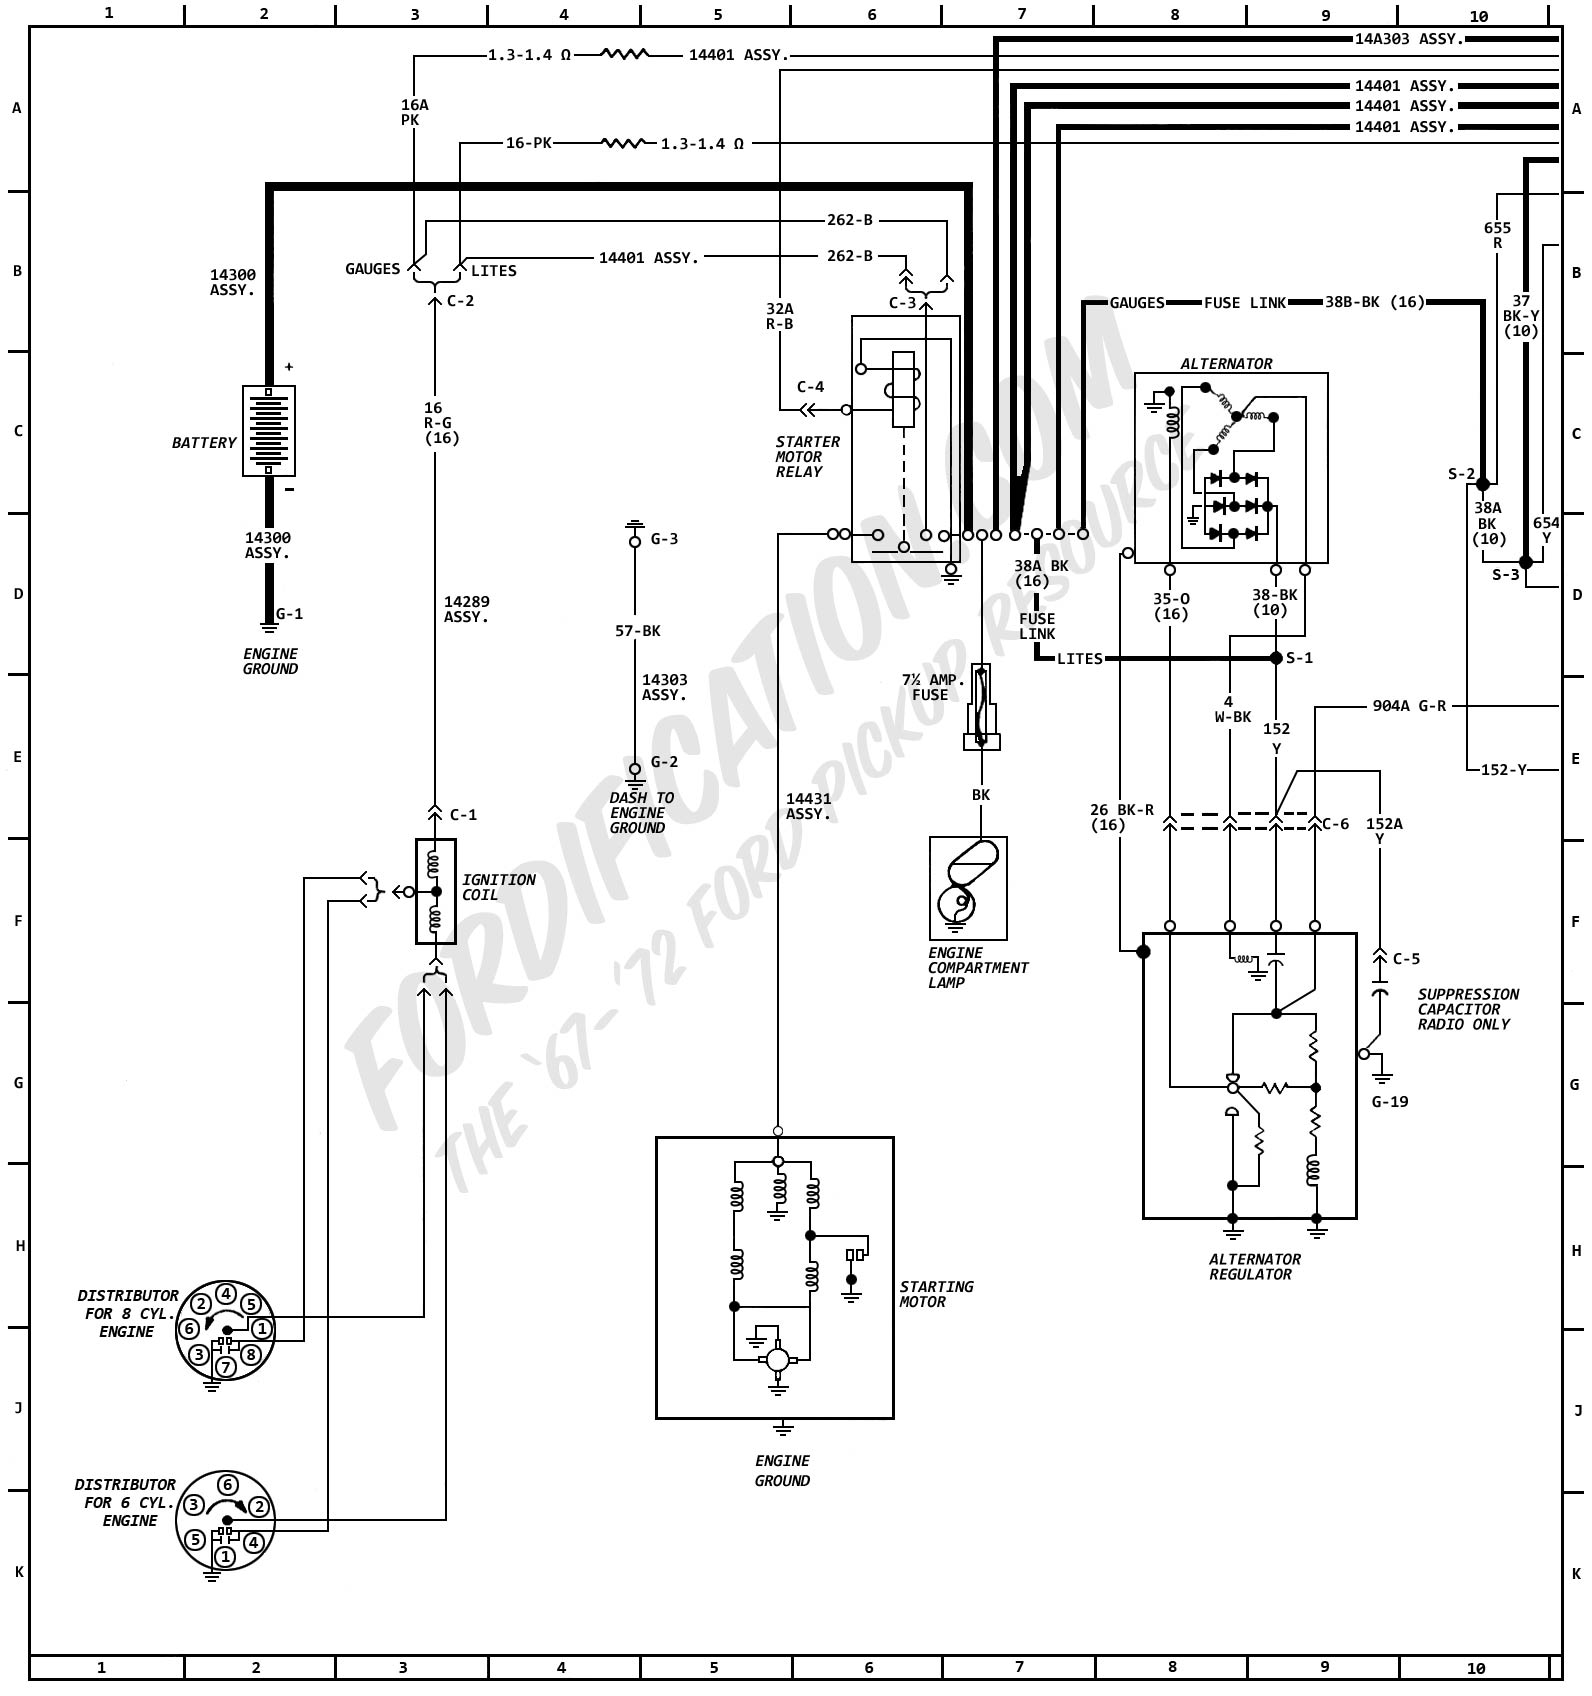 Wiring Diagrams Ford Pickups The Wiring Diagram readingratnet